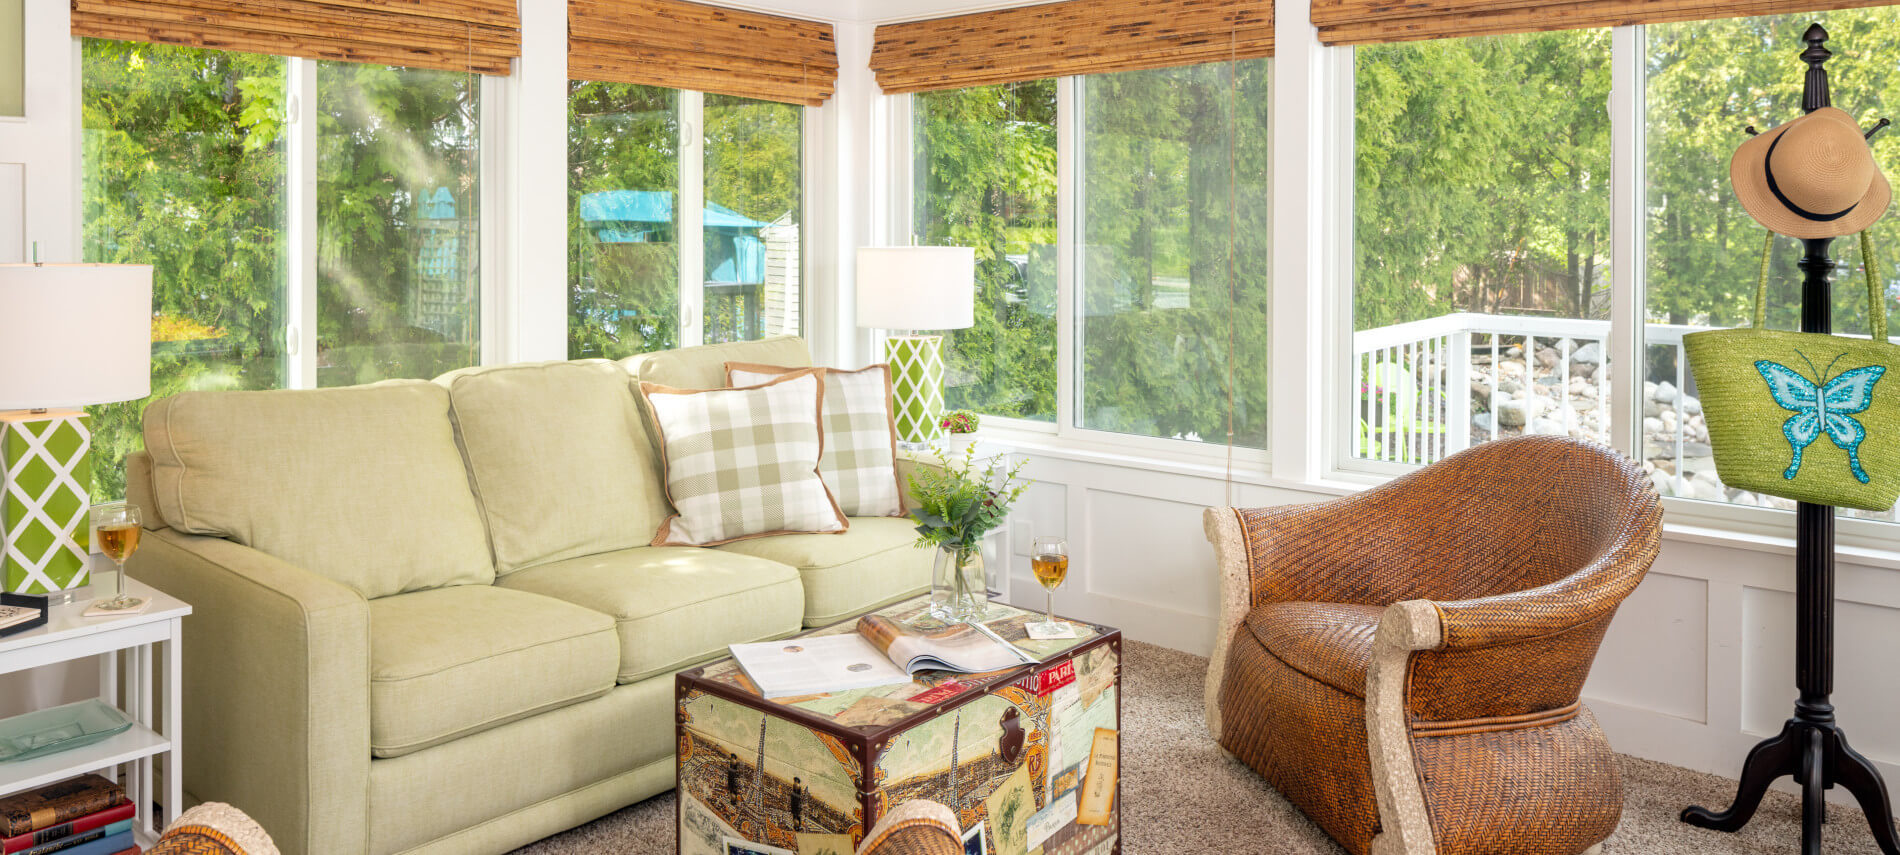 sunroom with cream couch and brown chairs with table in middle holding wine glasses, window with brown shades, coat rack with straw hat & bag with butterfly